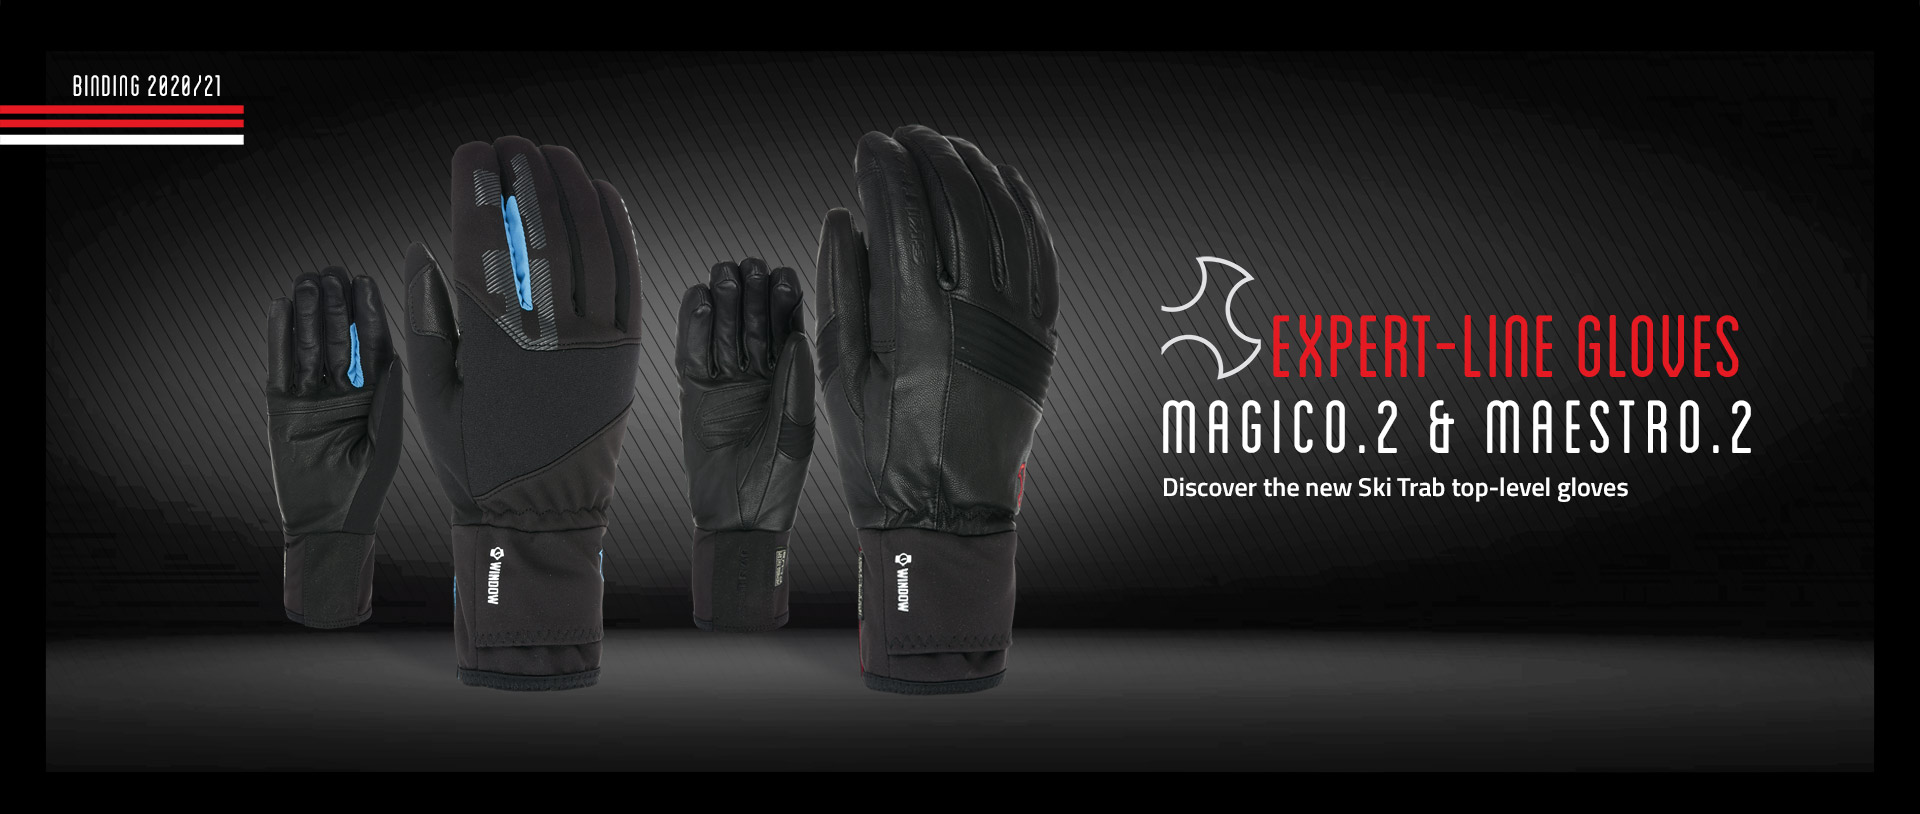 Expert Line Gloves Eng